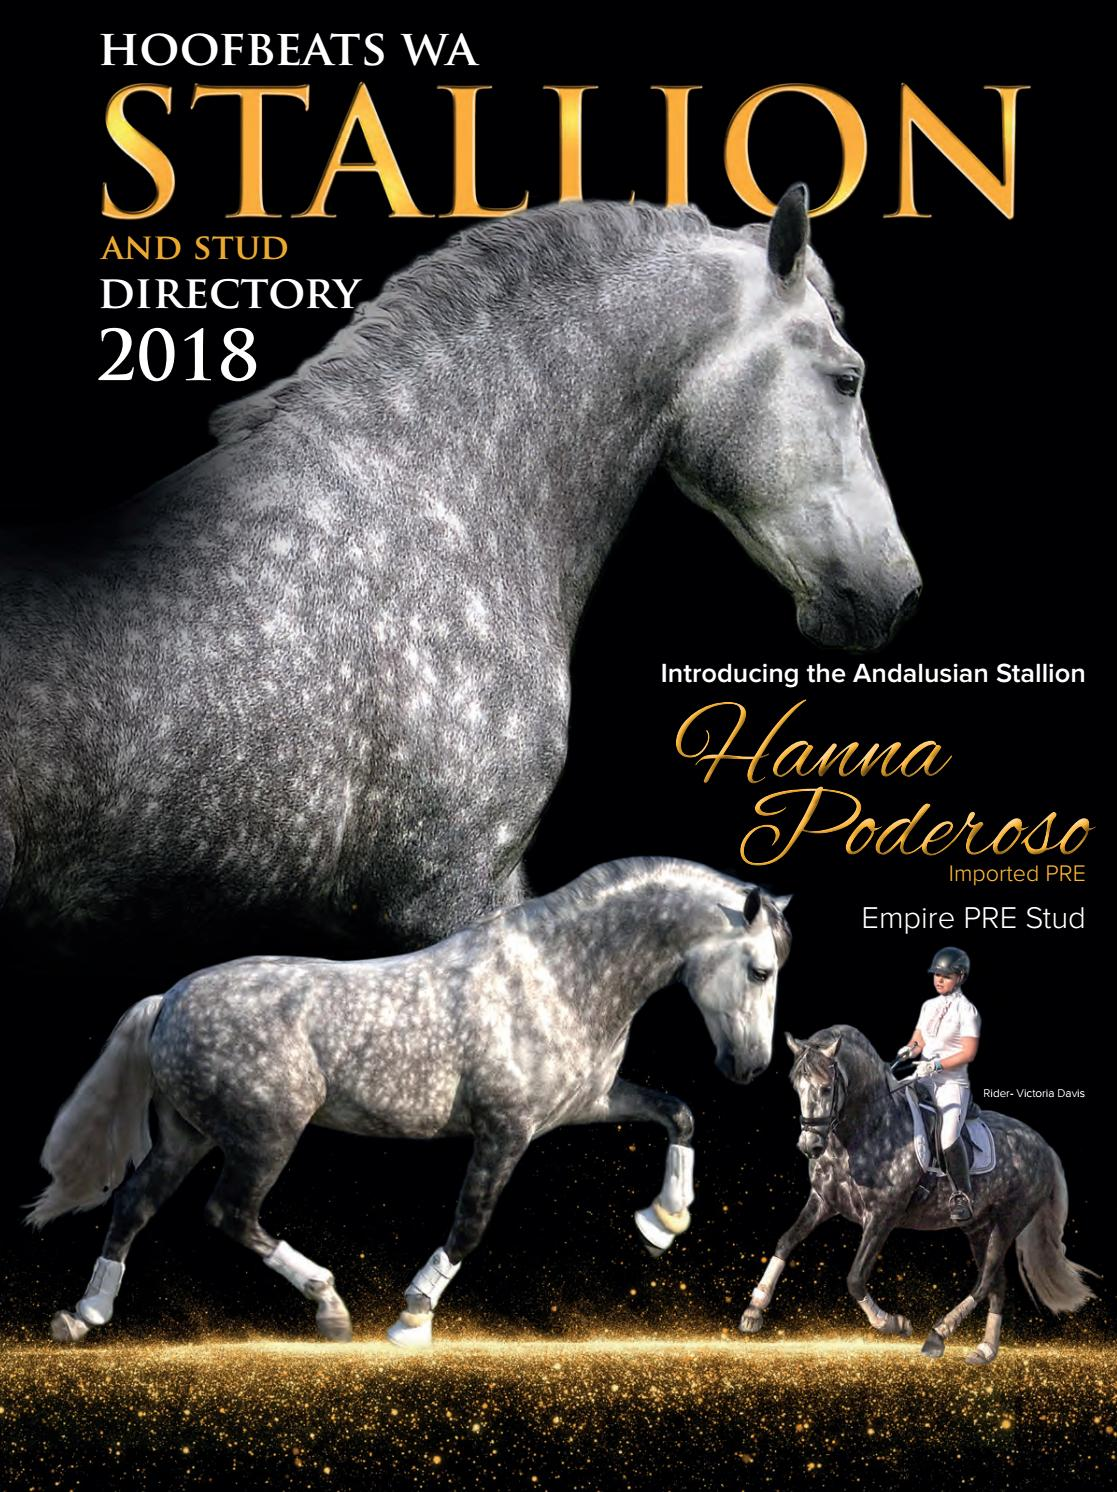 Hoofbeats Stallion Directory 2018 By Hoofbeat Publications Issuu